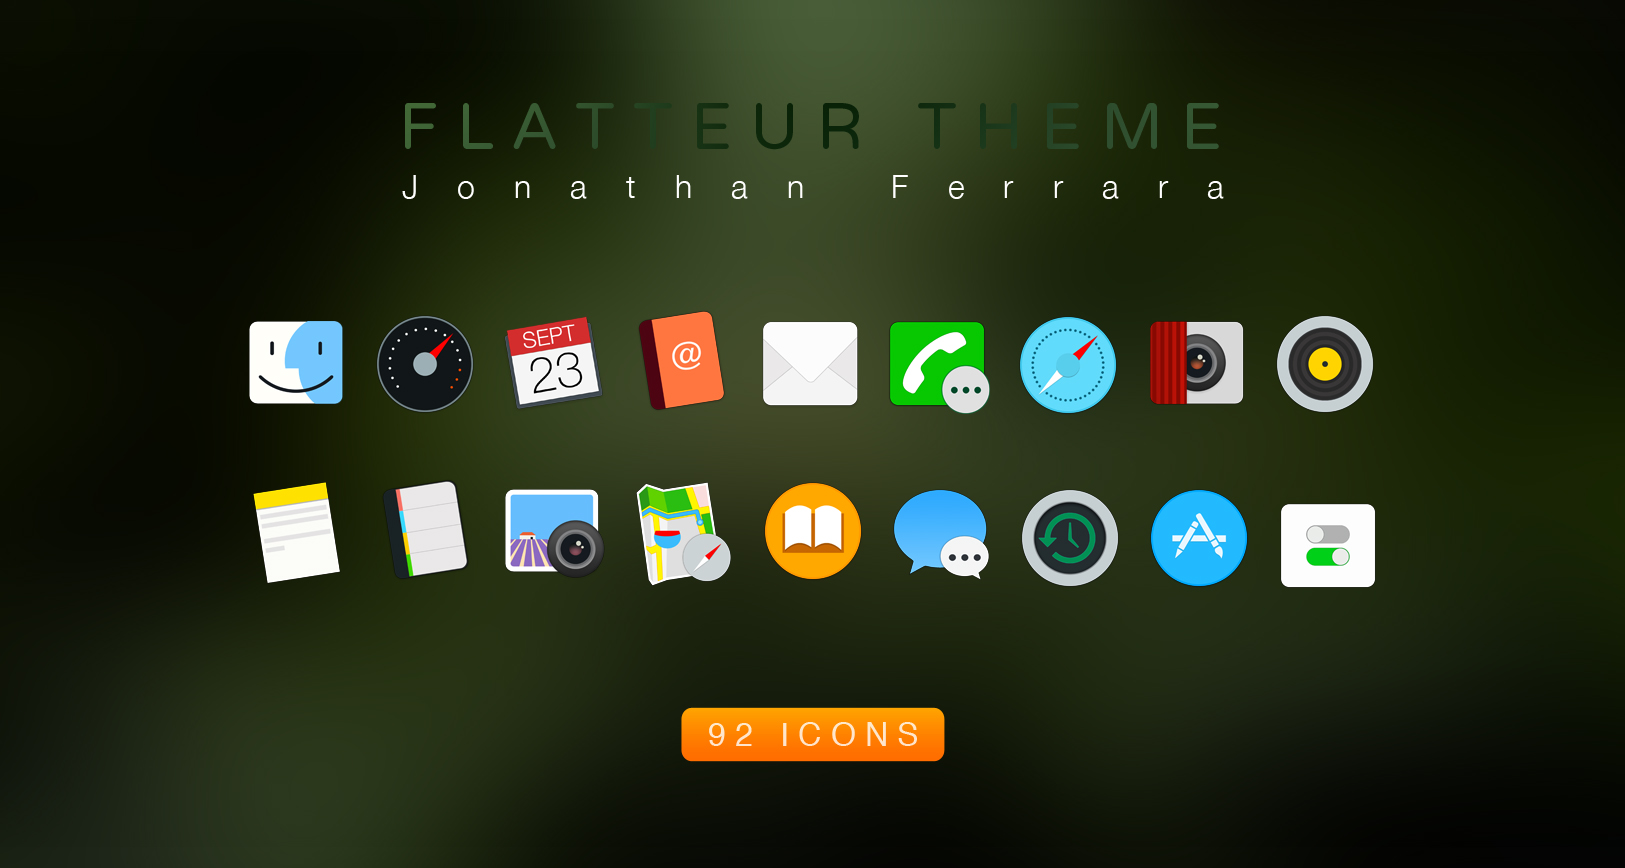 Flatteur Theme - Mac OS X Icon Pack by John-Ferrara on